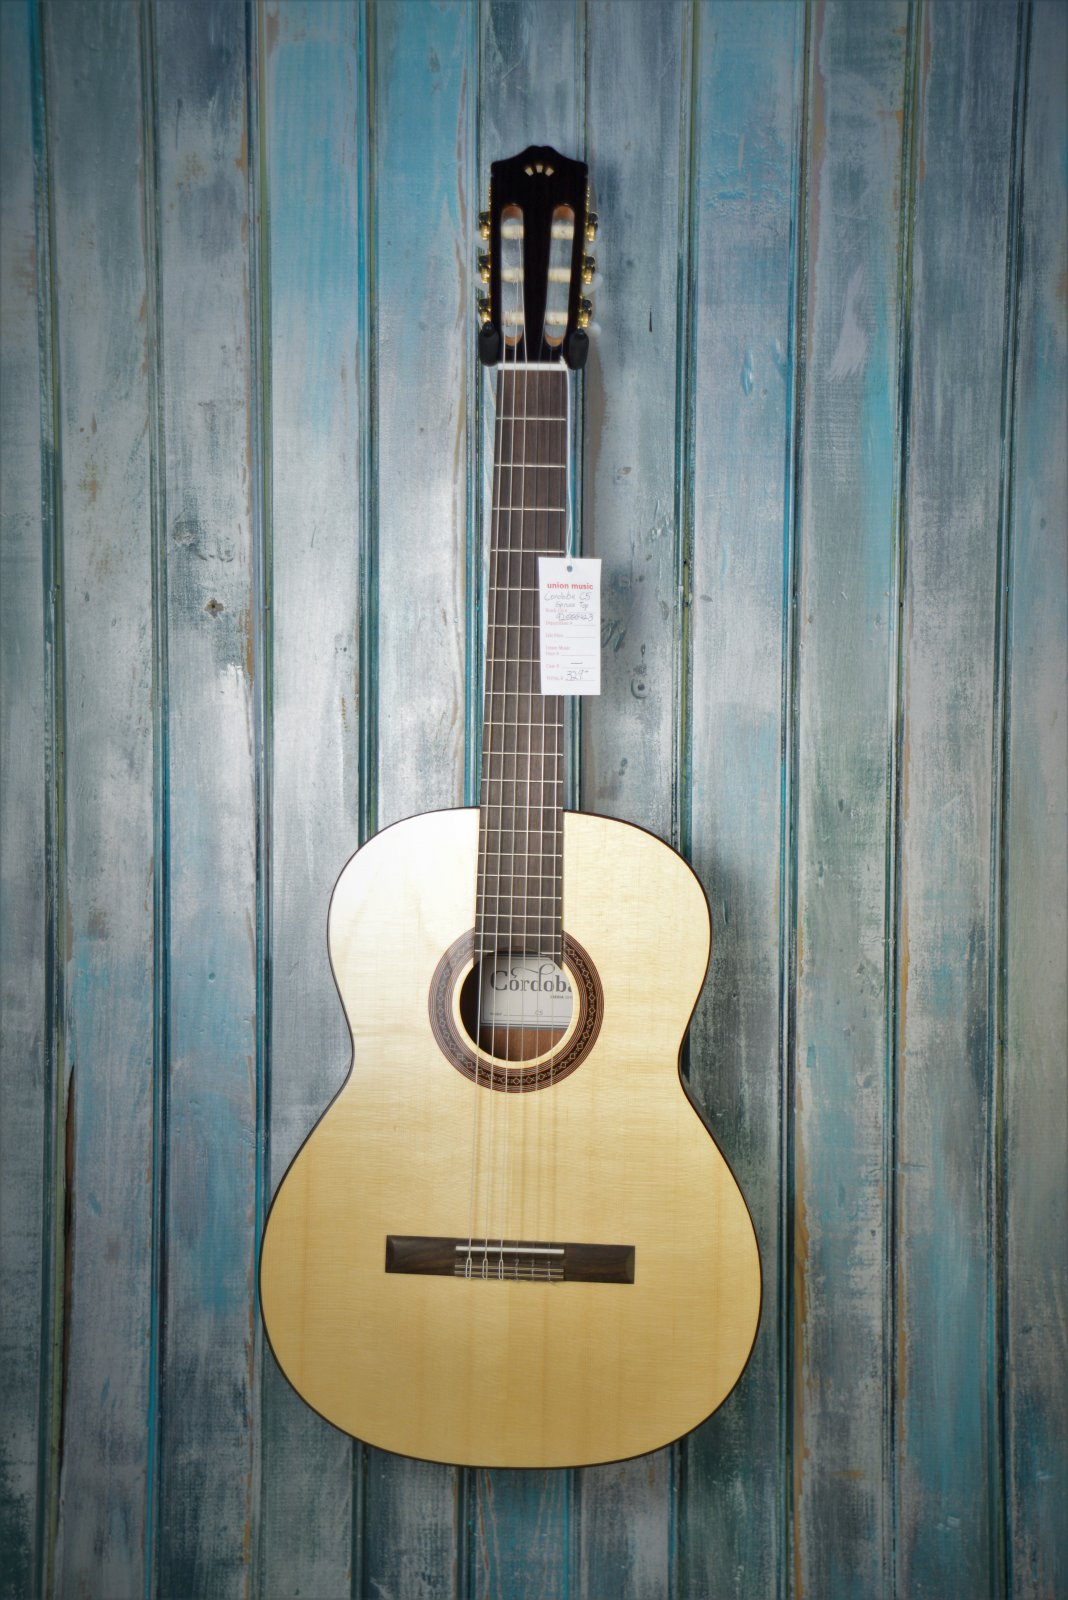 Cordoba C5 SP Classical Guitar with Spruce Top